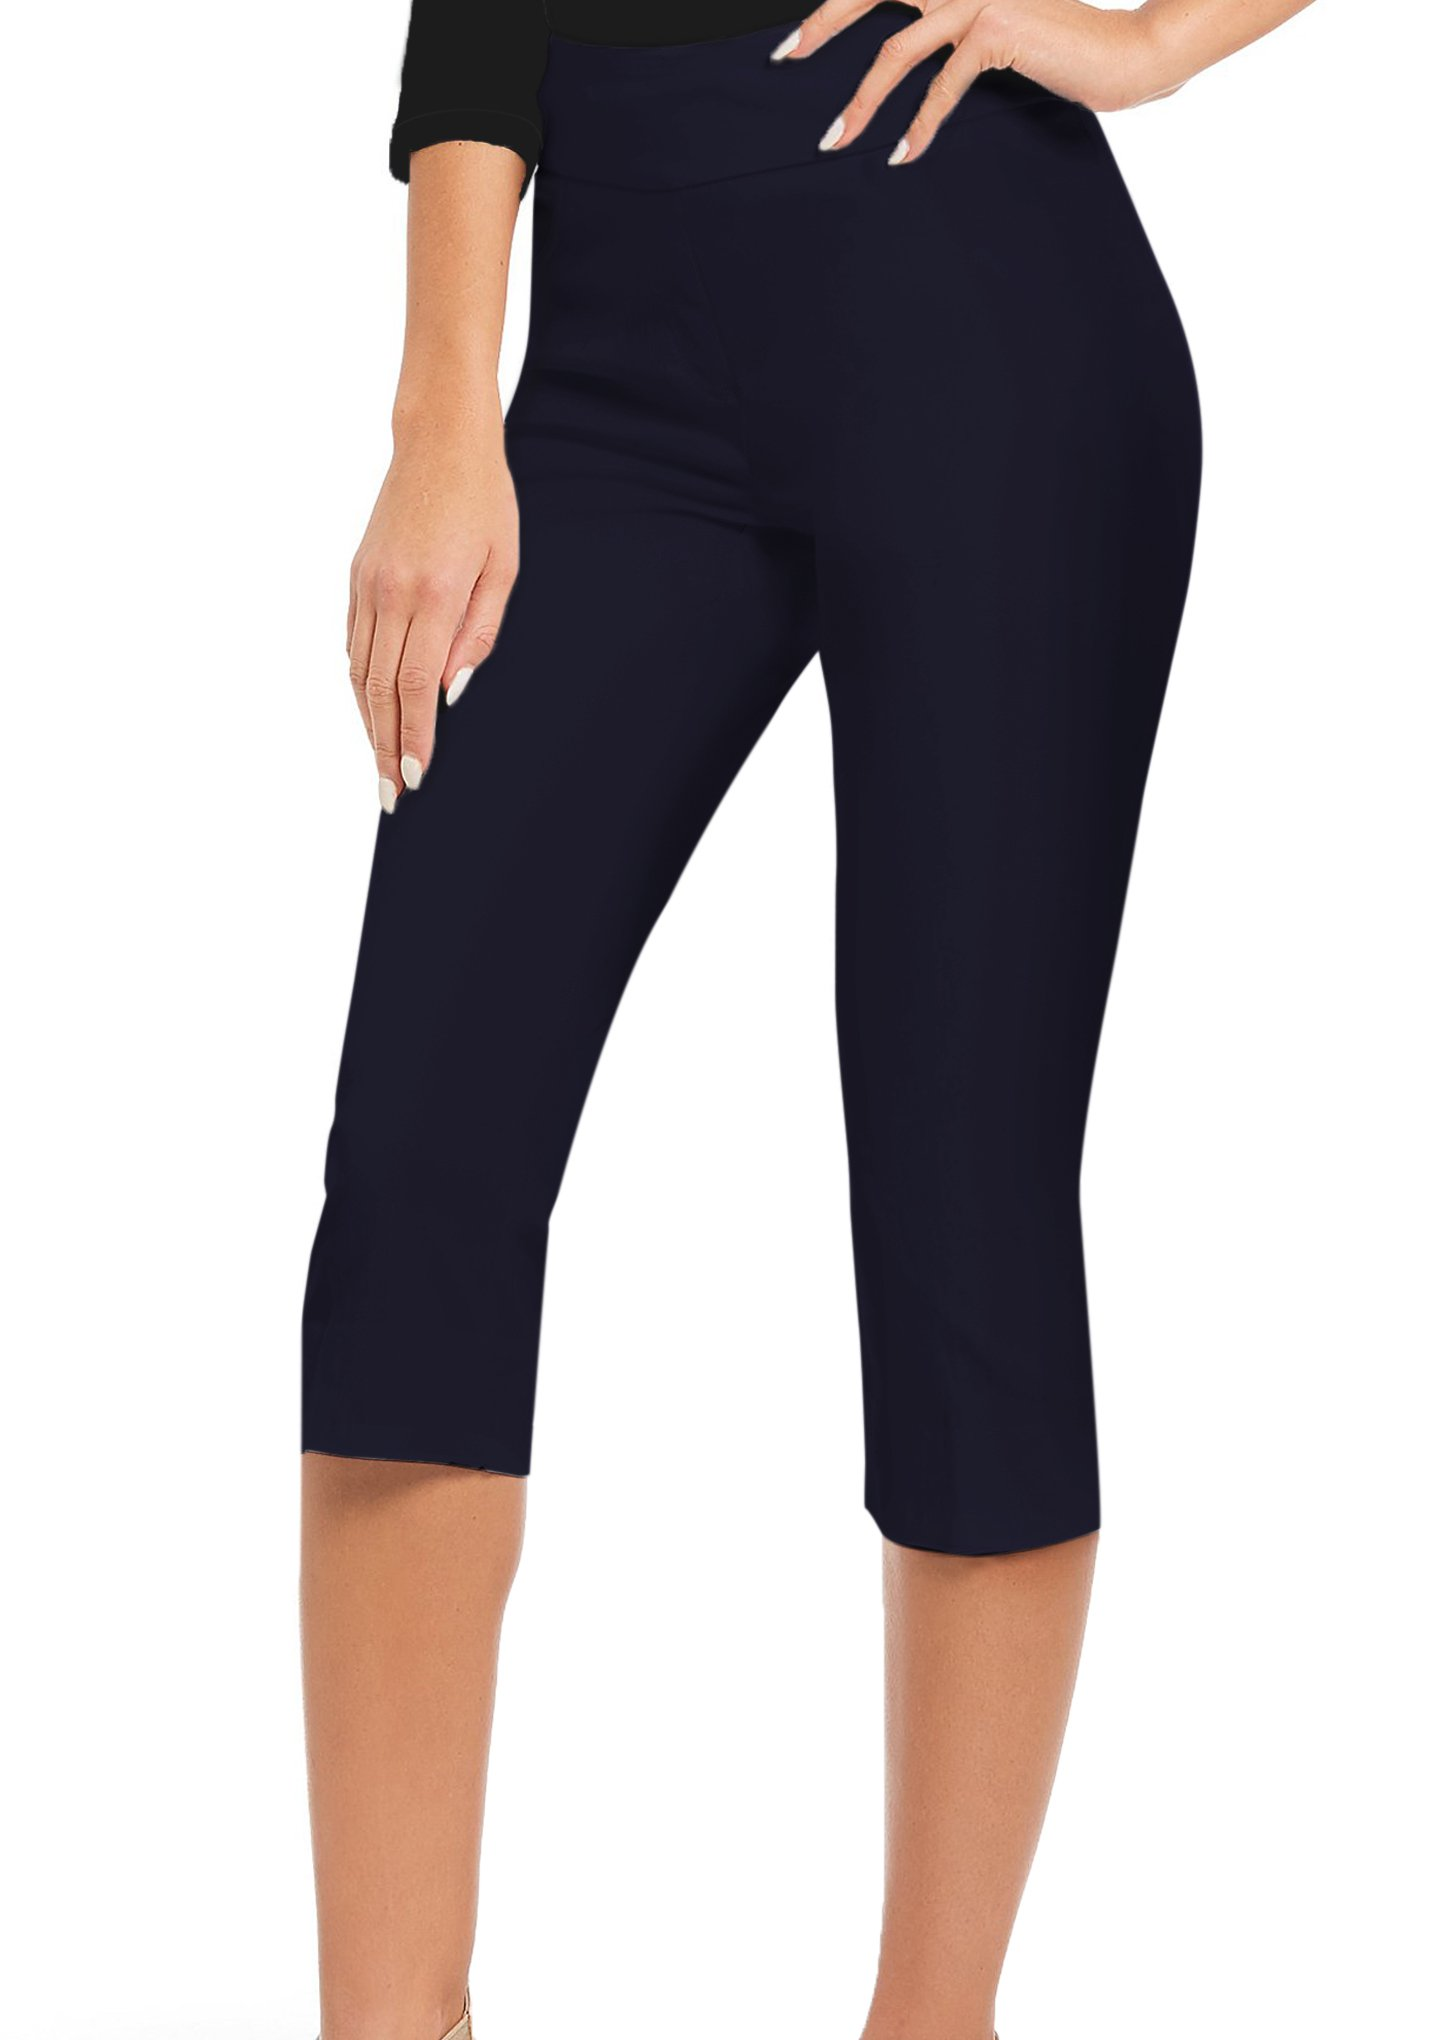 HyBrid & Company Women Stretch Pull On Business Millennium Capri Pants KQ44972X DARKNAVY 2X